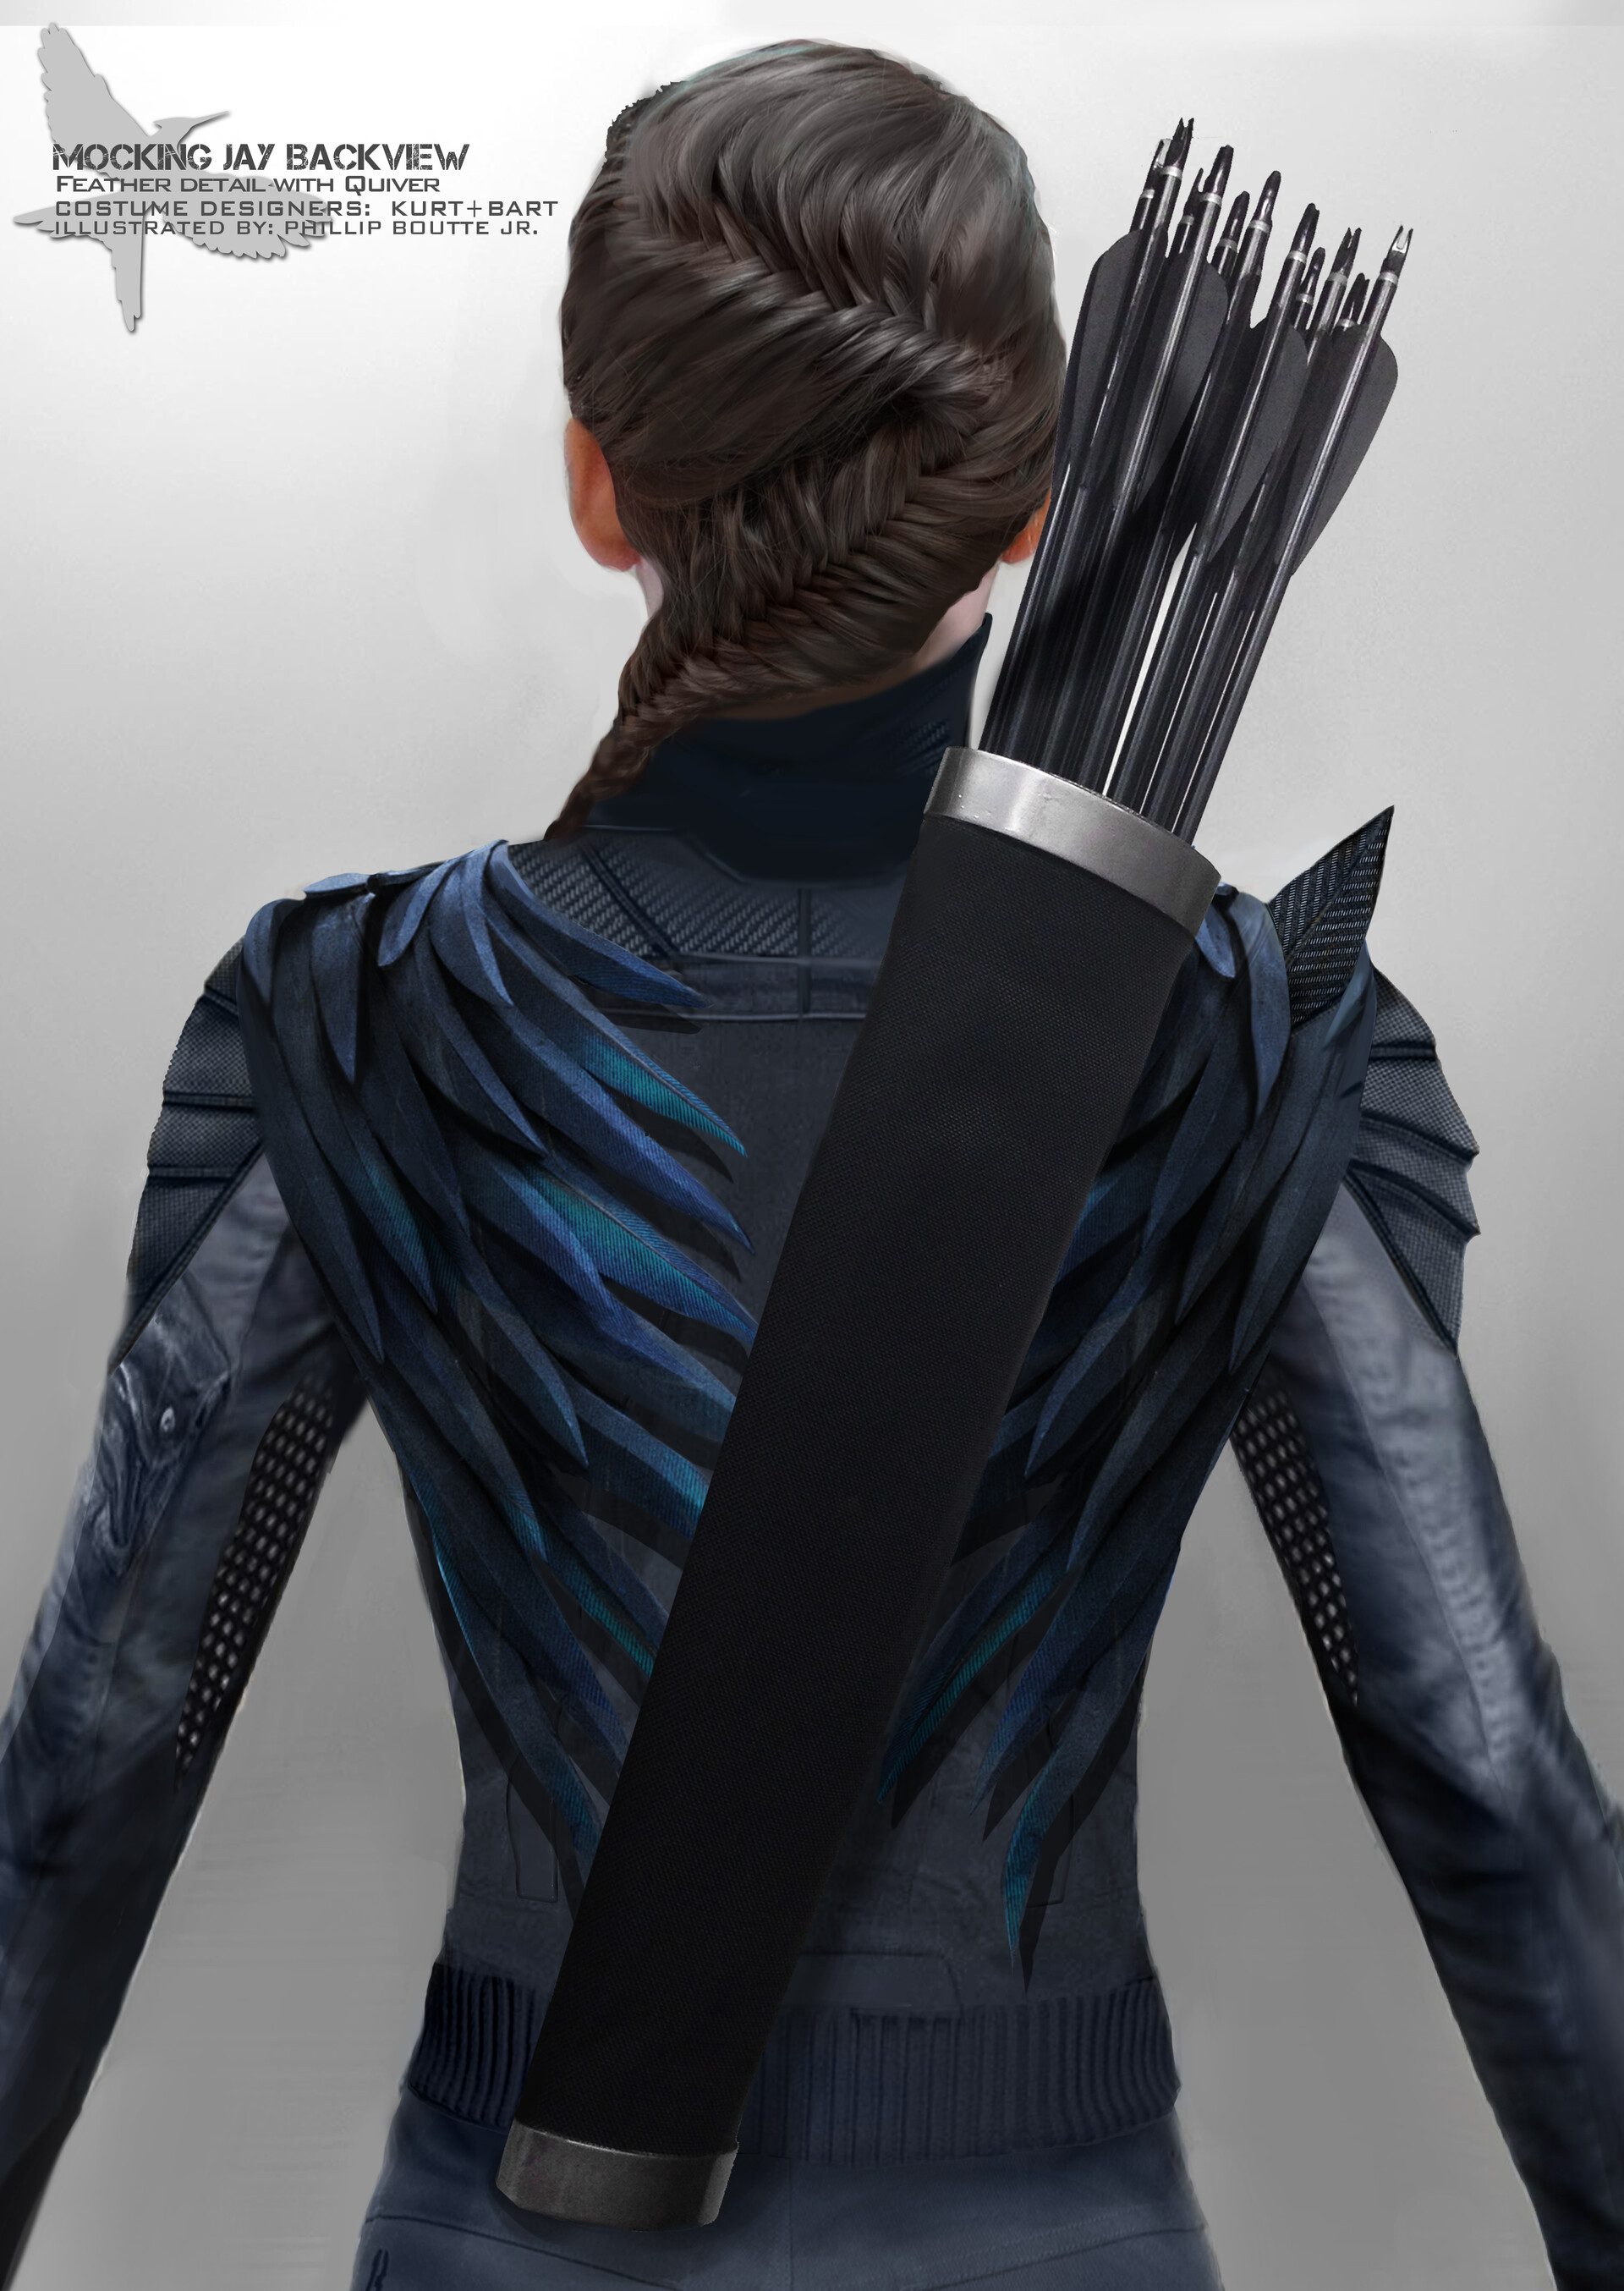 MJ armor feather and quiver concept